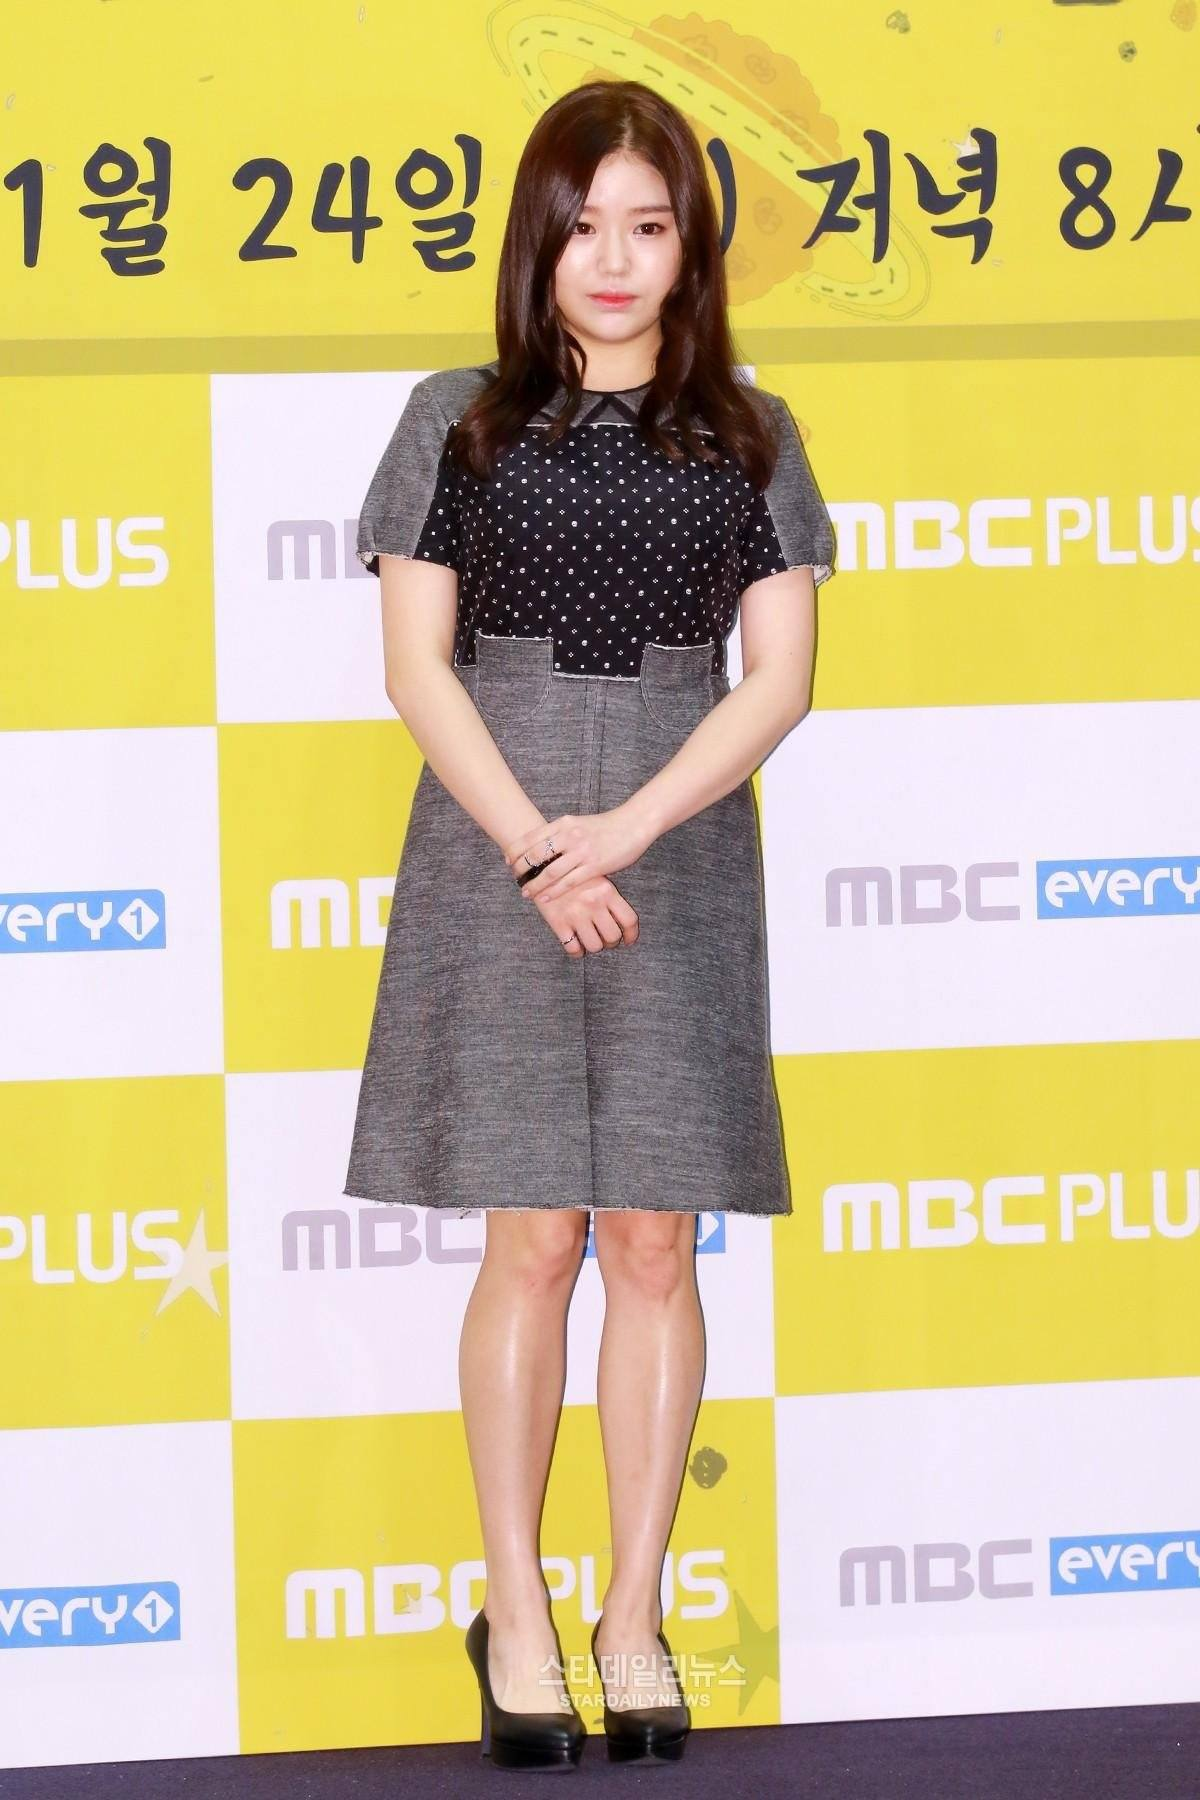 Cho Hye Jung before she gained weight for the role.